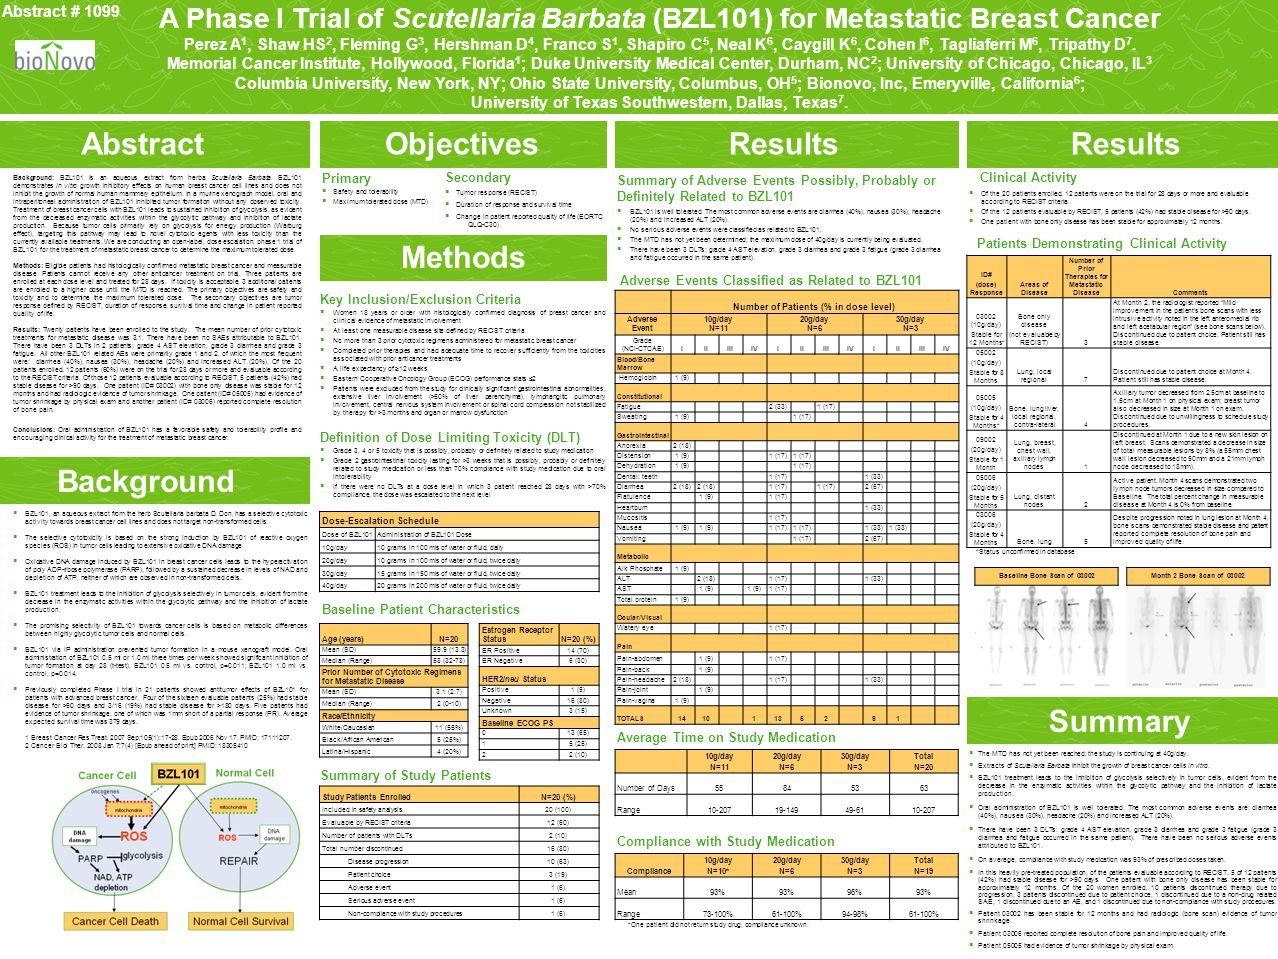 A Phase I Trial of Scutellaria Barbata (BZL101) for Metastatic Breast Cancer Perez A 1, Shaw HS 2, Fleming G 3, Hershman D 4, Franco S 1, Shapiro C 5,